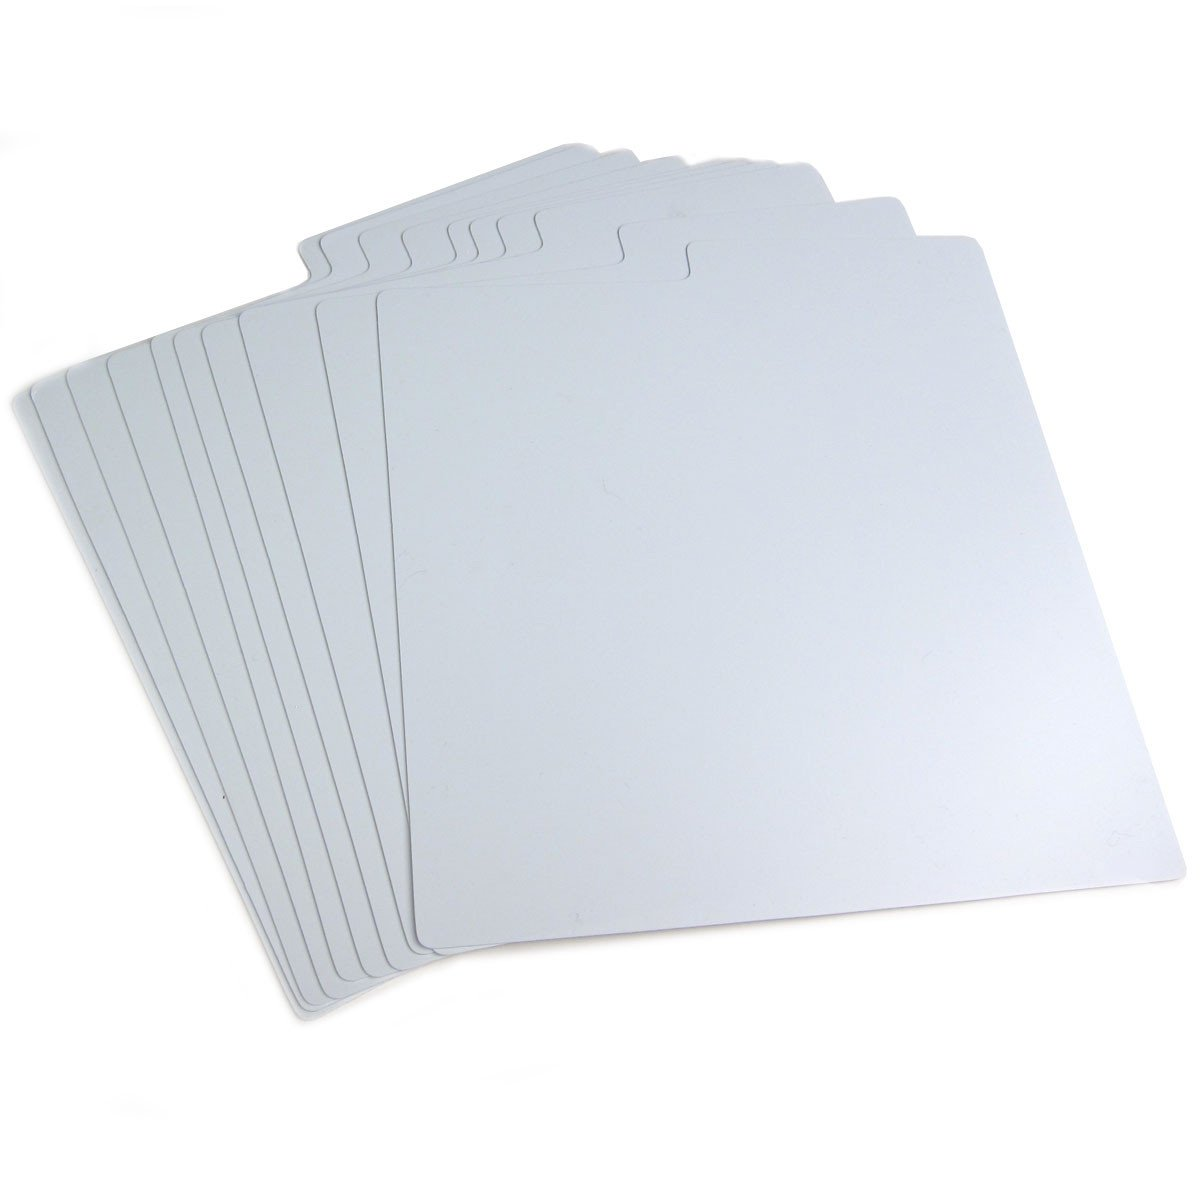 LP Dividers (10 Units) Record Supply Co.